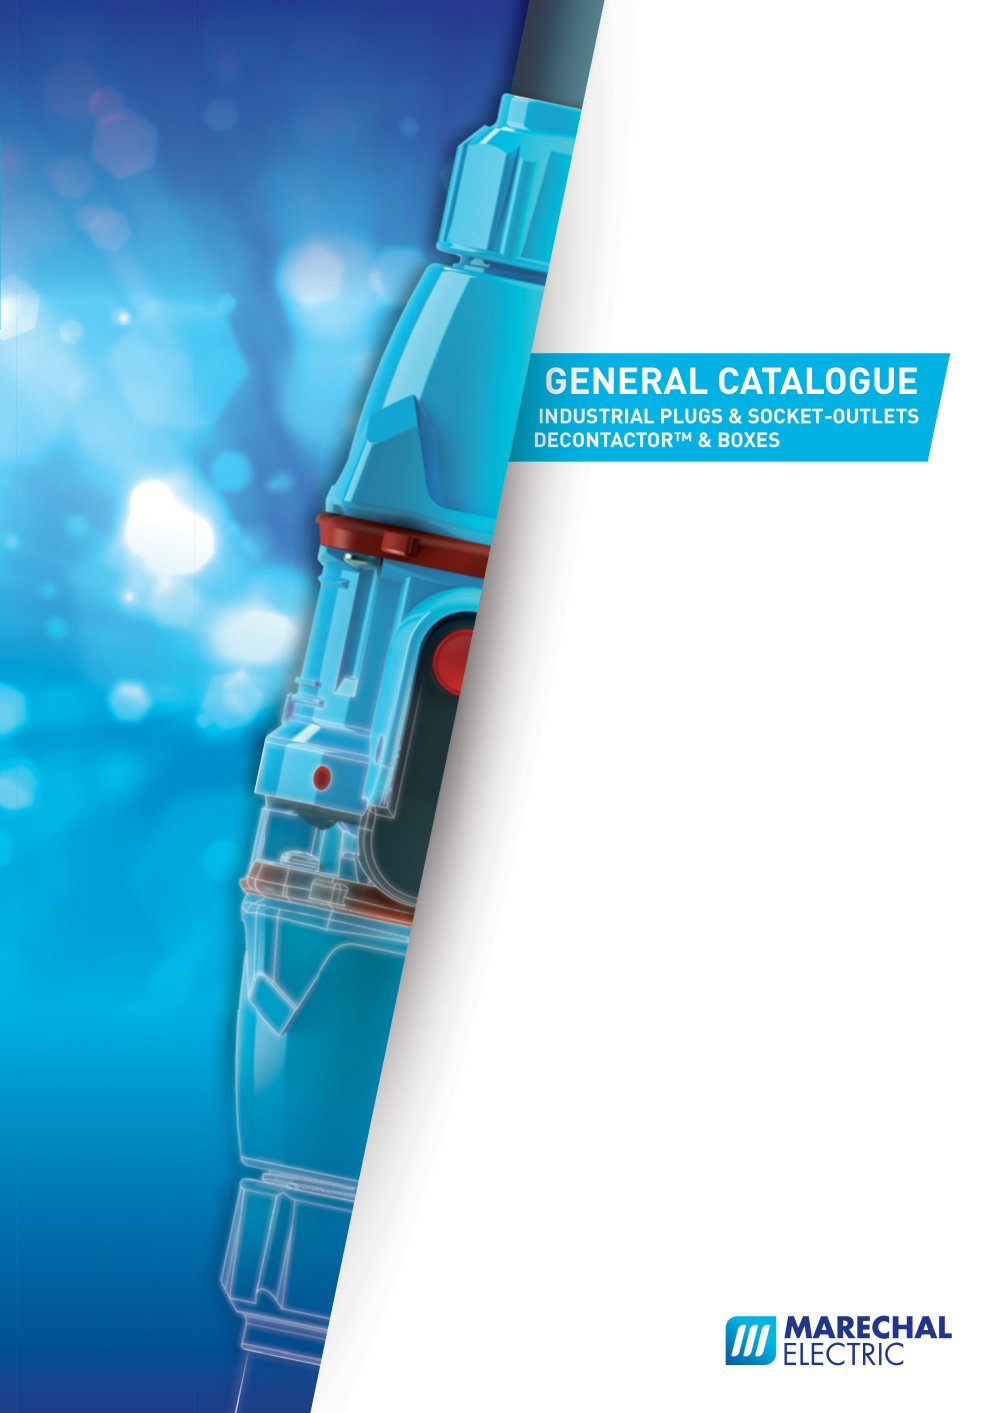 General catalogue 2017 - MARECHAL ELECTRIC - PDF Catalogue ...